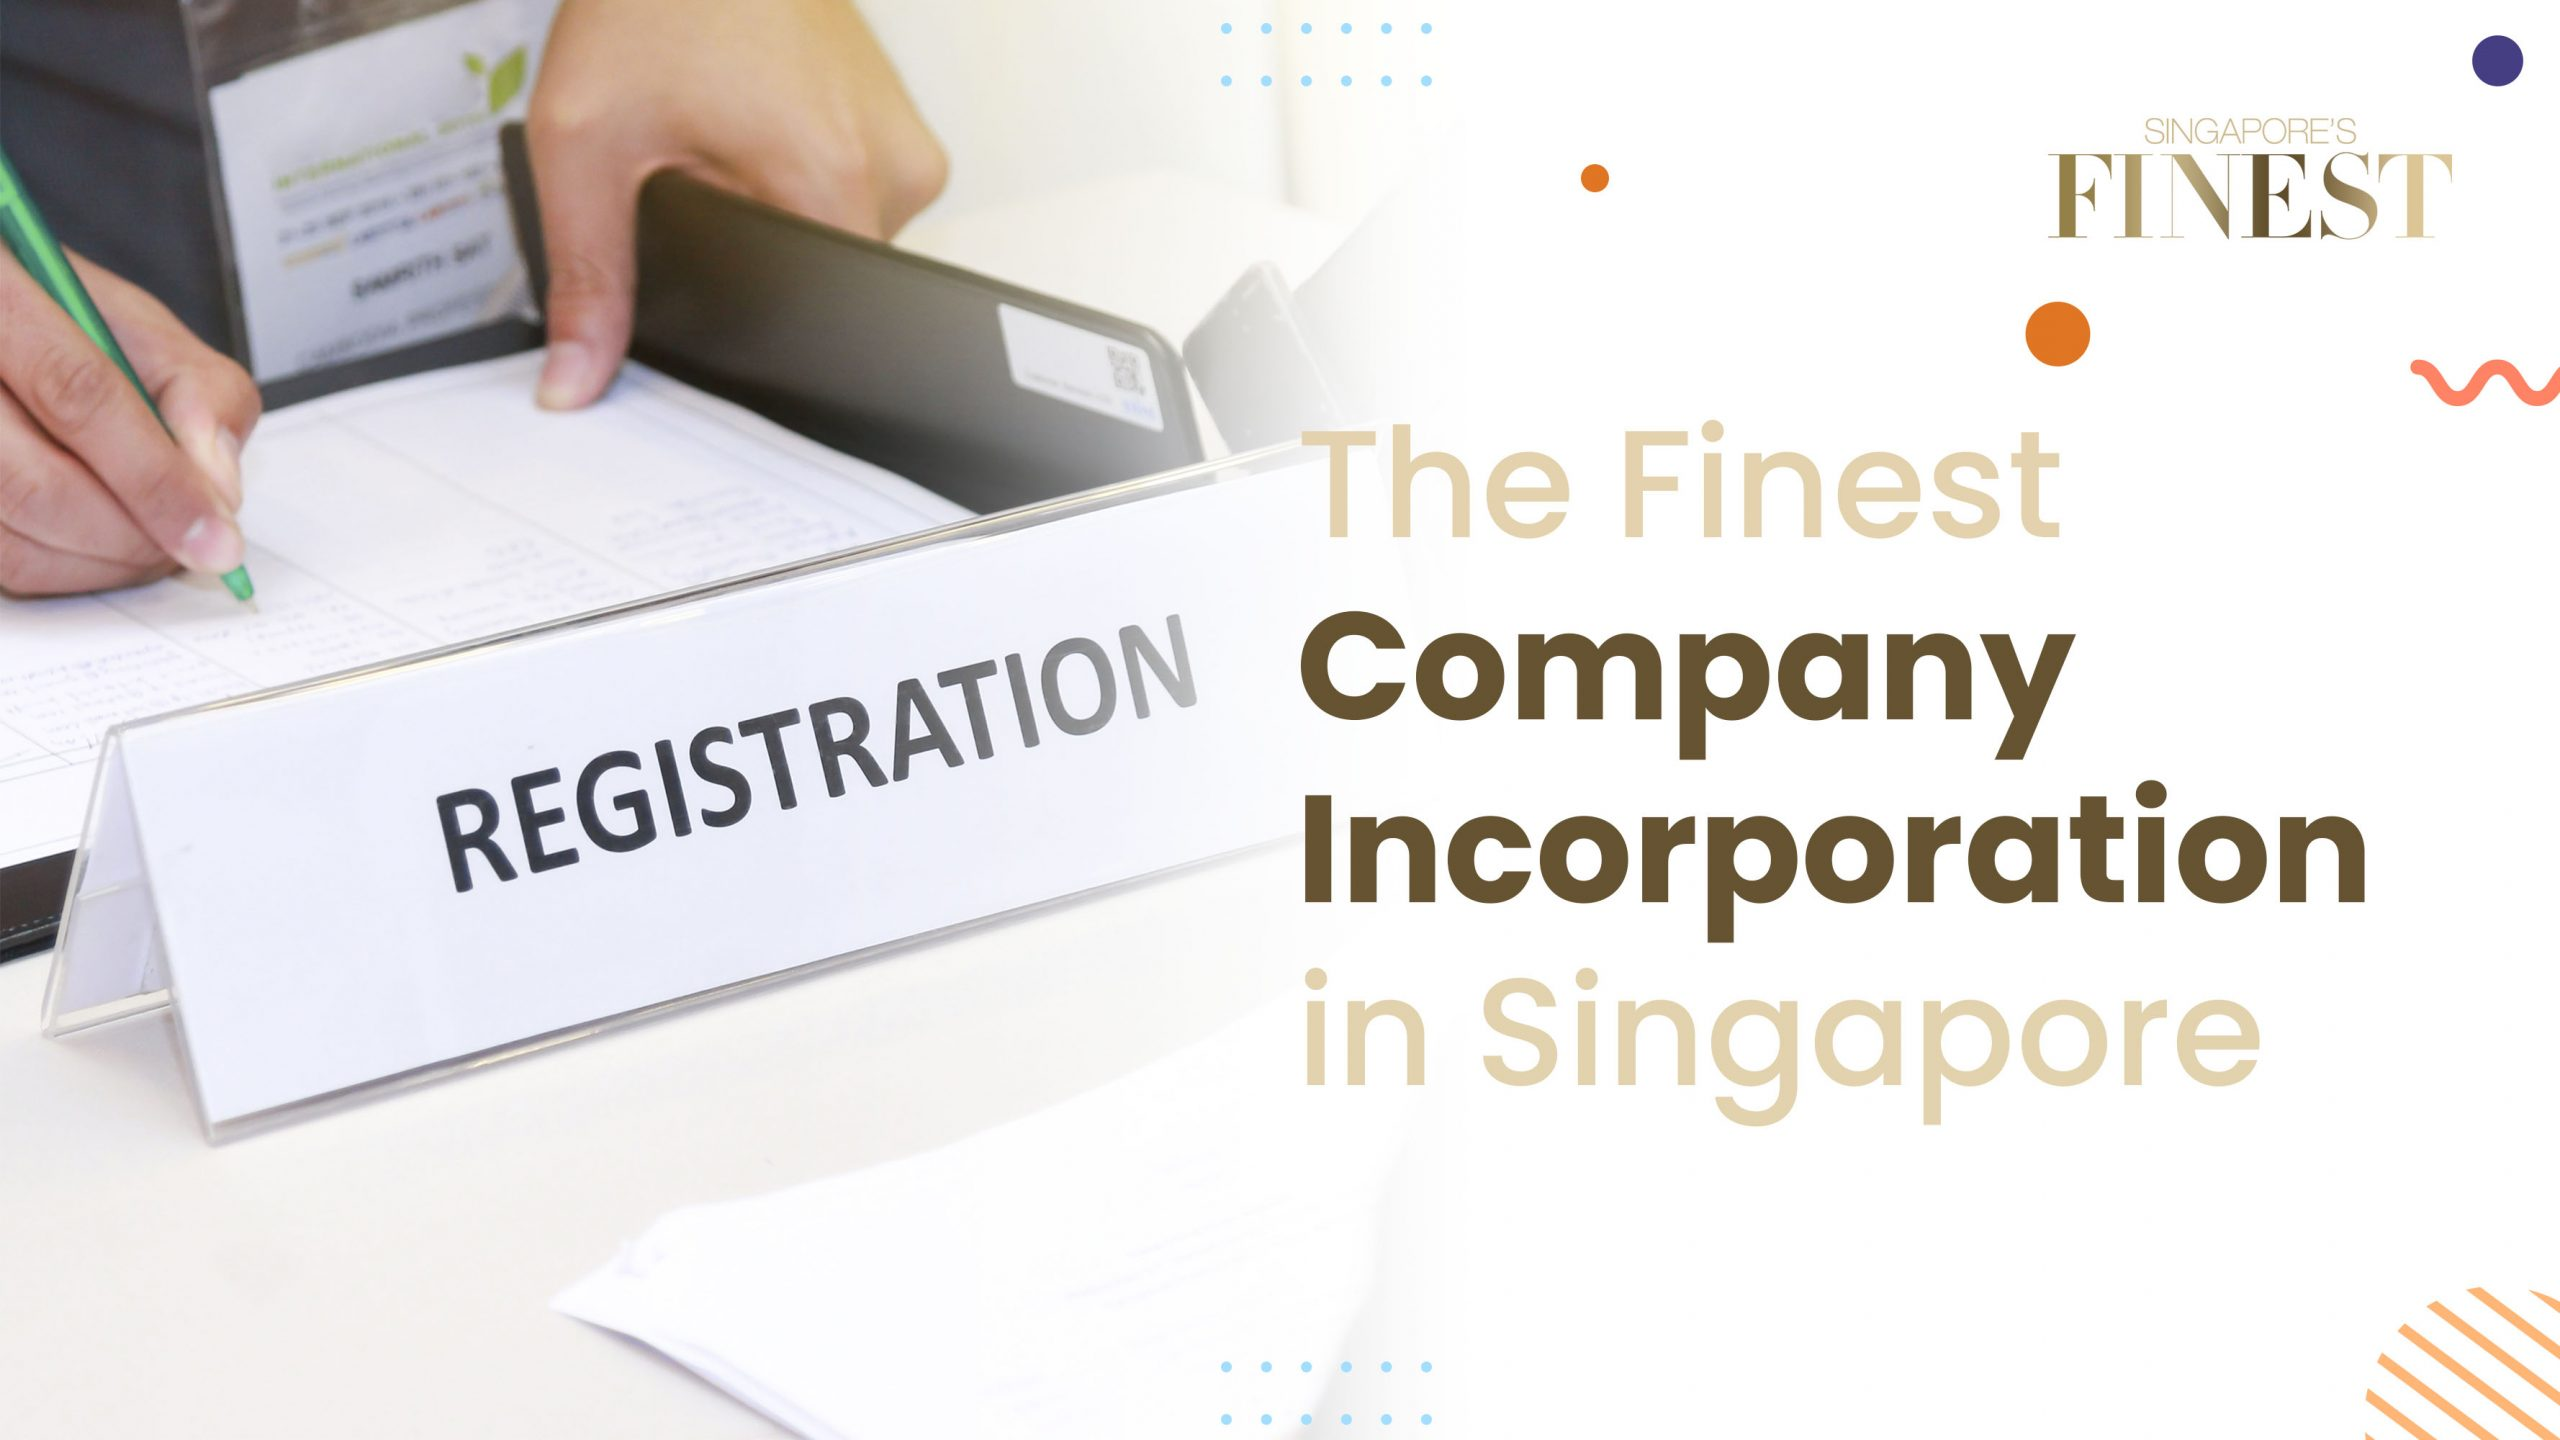 Company registration and business incorporation in Singapore